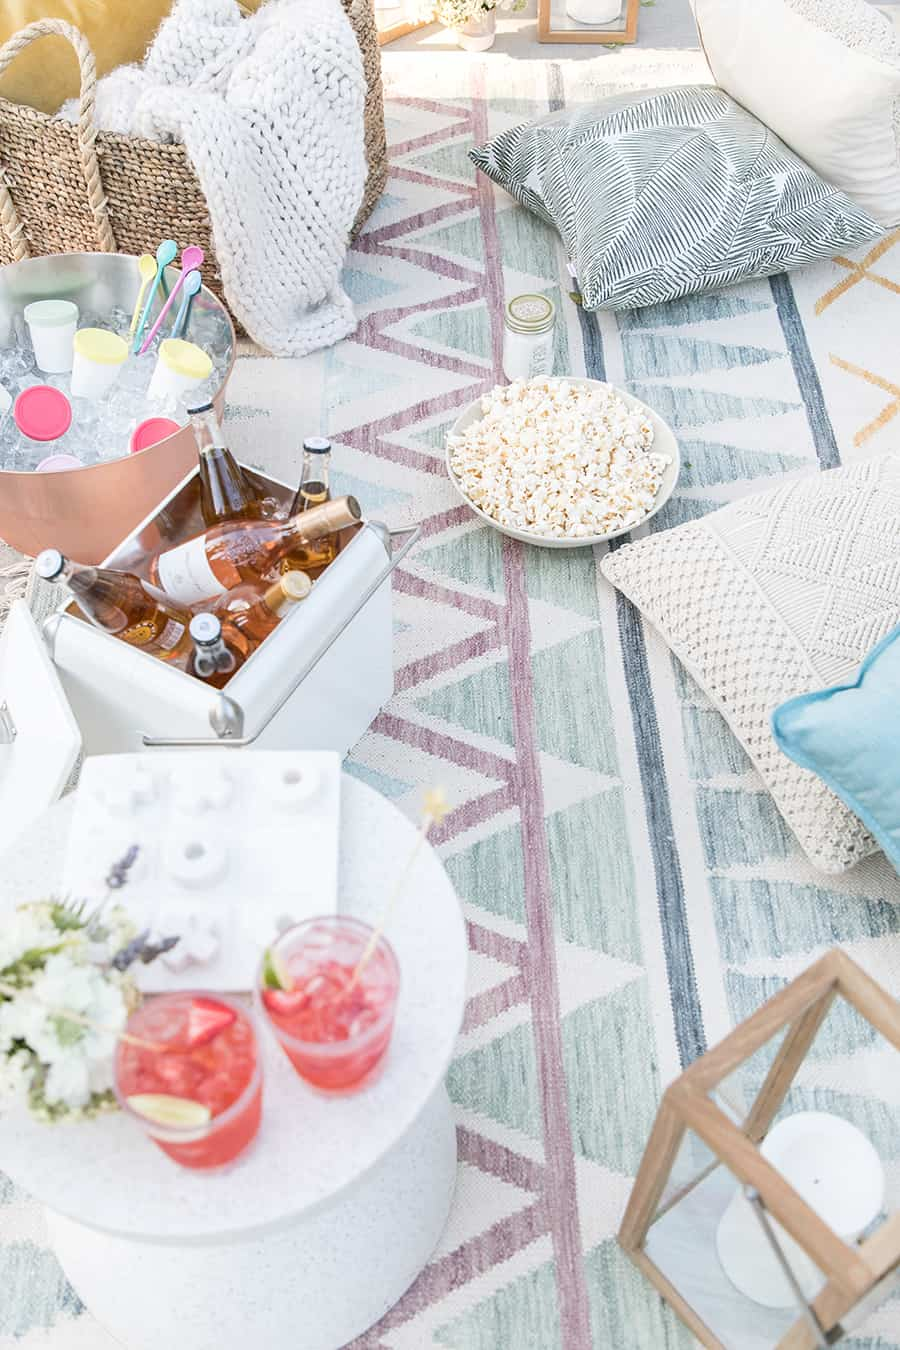 Outdoor movie night with pillows and popcorn, table with cocktails and rose in coolers.